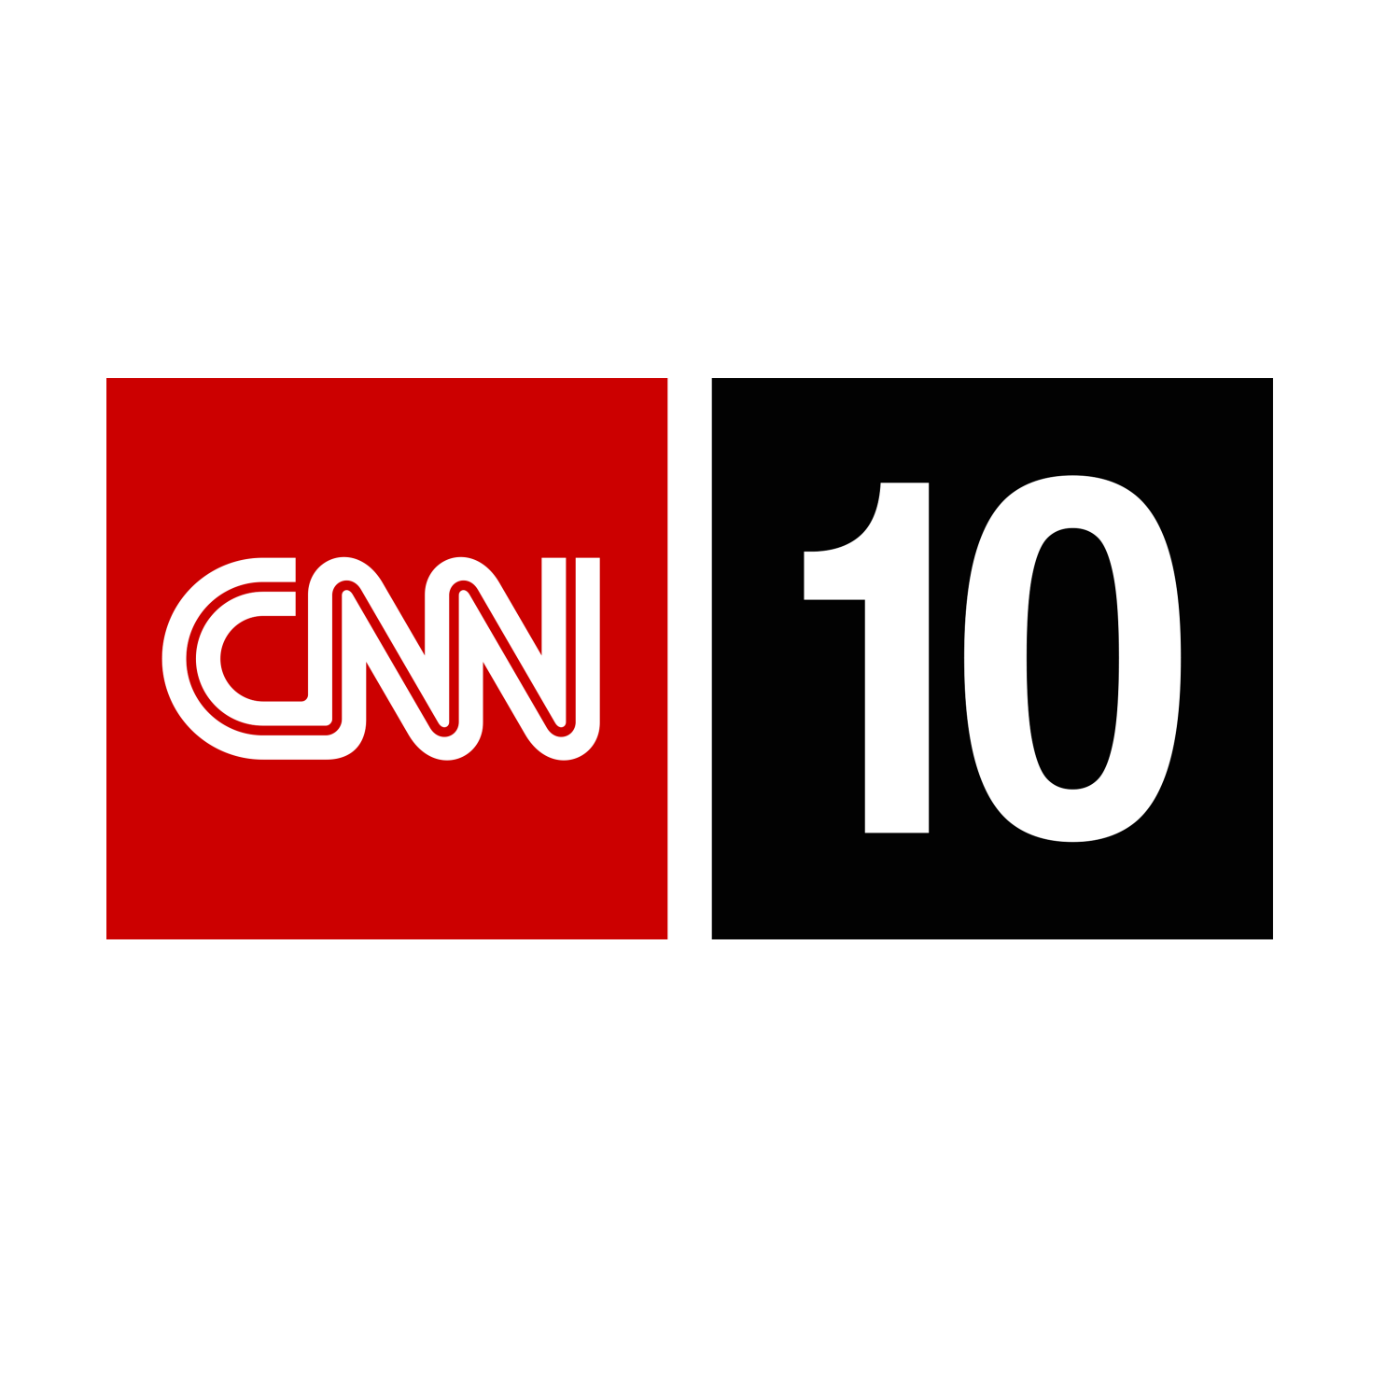 CNN Student News - March 14, 2013